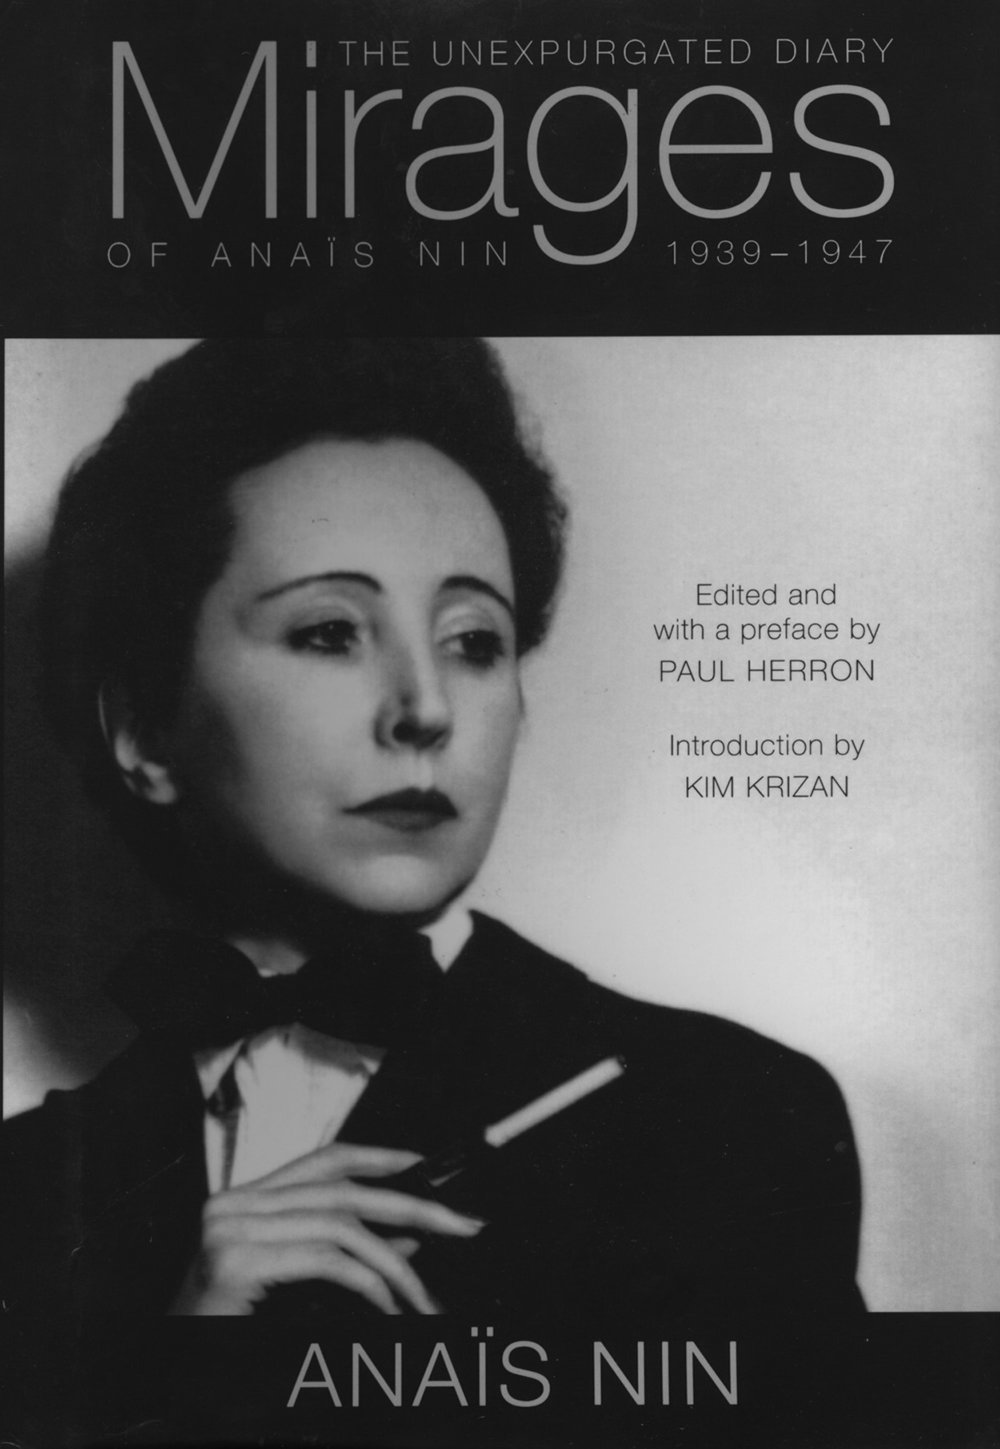 Mirages: The Unexpurgated Diary of Anais Nin 1939-1944